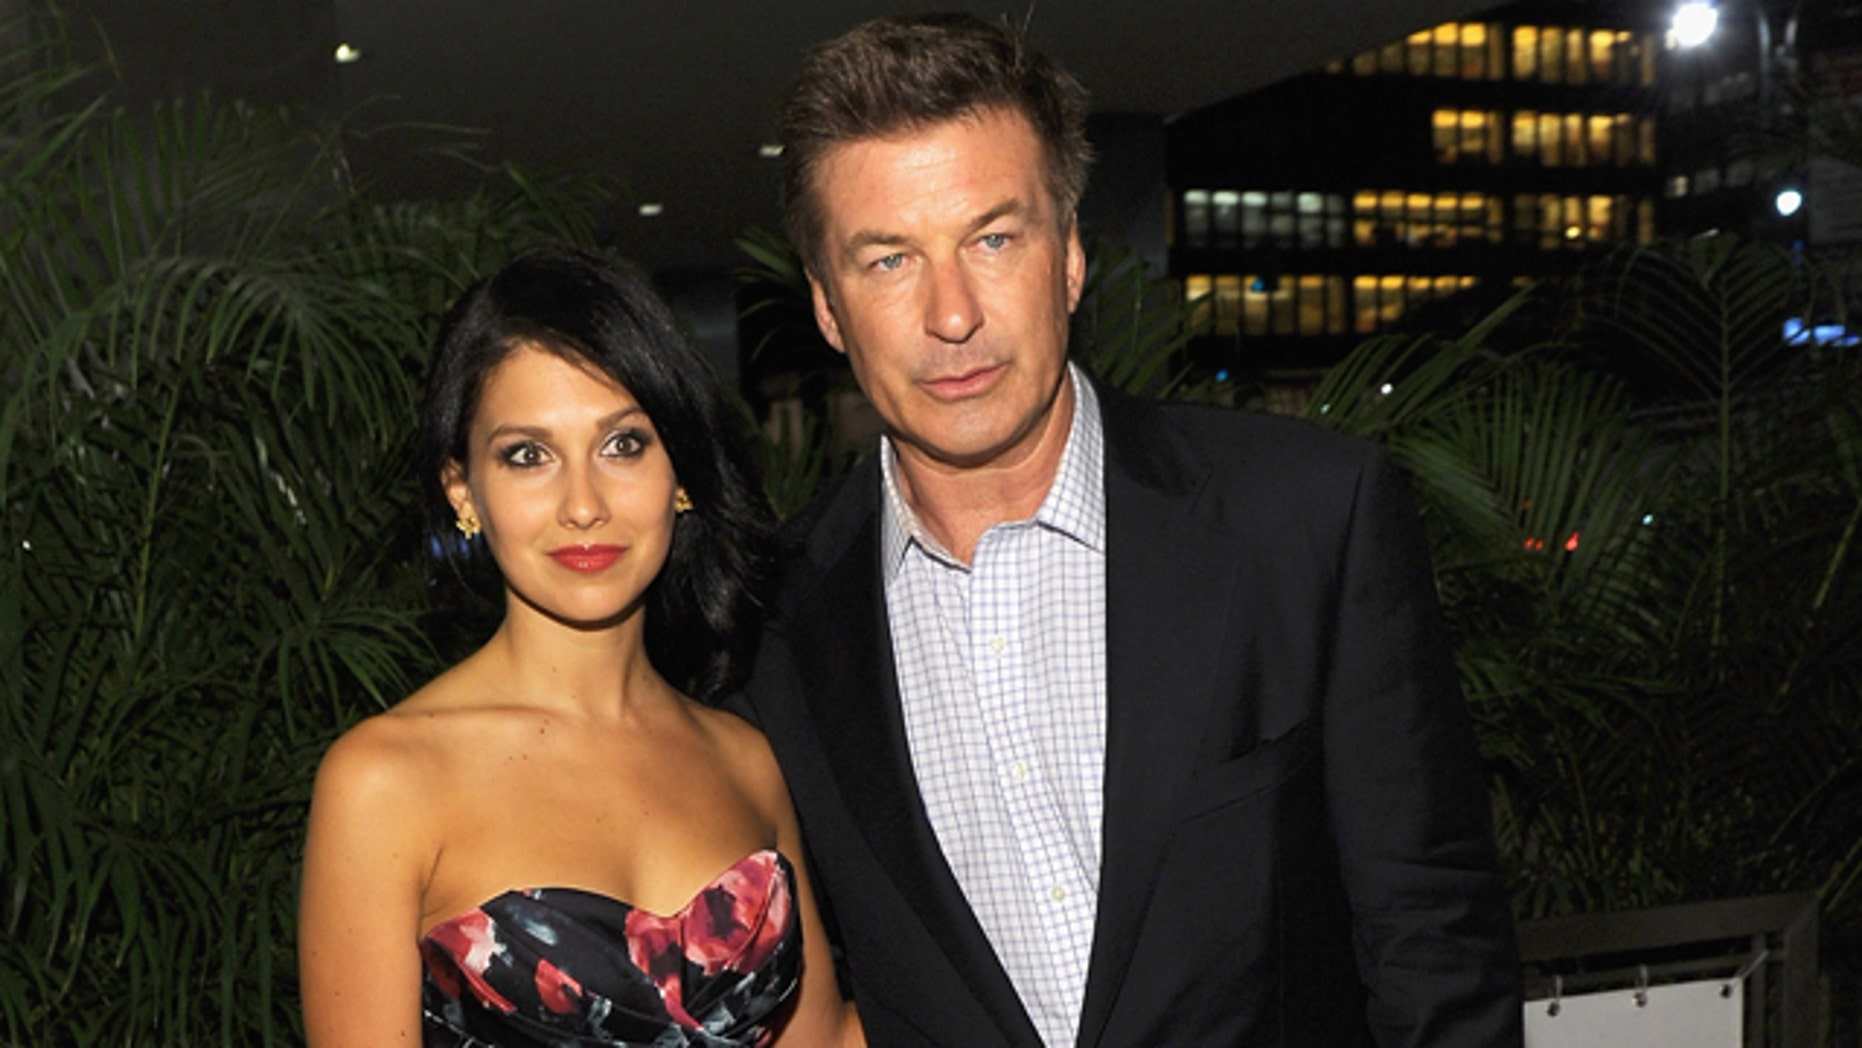 """NEW YORK, NY - JUNE 20:  Hilaria Thomas and Actor Alec Baldwin attend the after party for the Cinema Society with The Hollywood Reporter & Piaget and Disaronno special screening of """"To Rome With Love"""" at Casa Lever on June 20, 2012 in New York City.  (Photo by Larry Busacca/Getty Images)"""